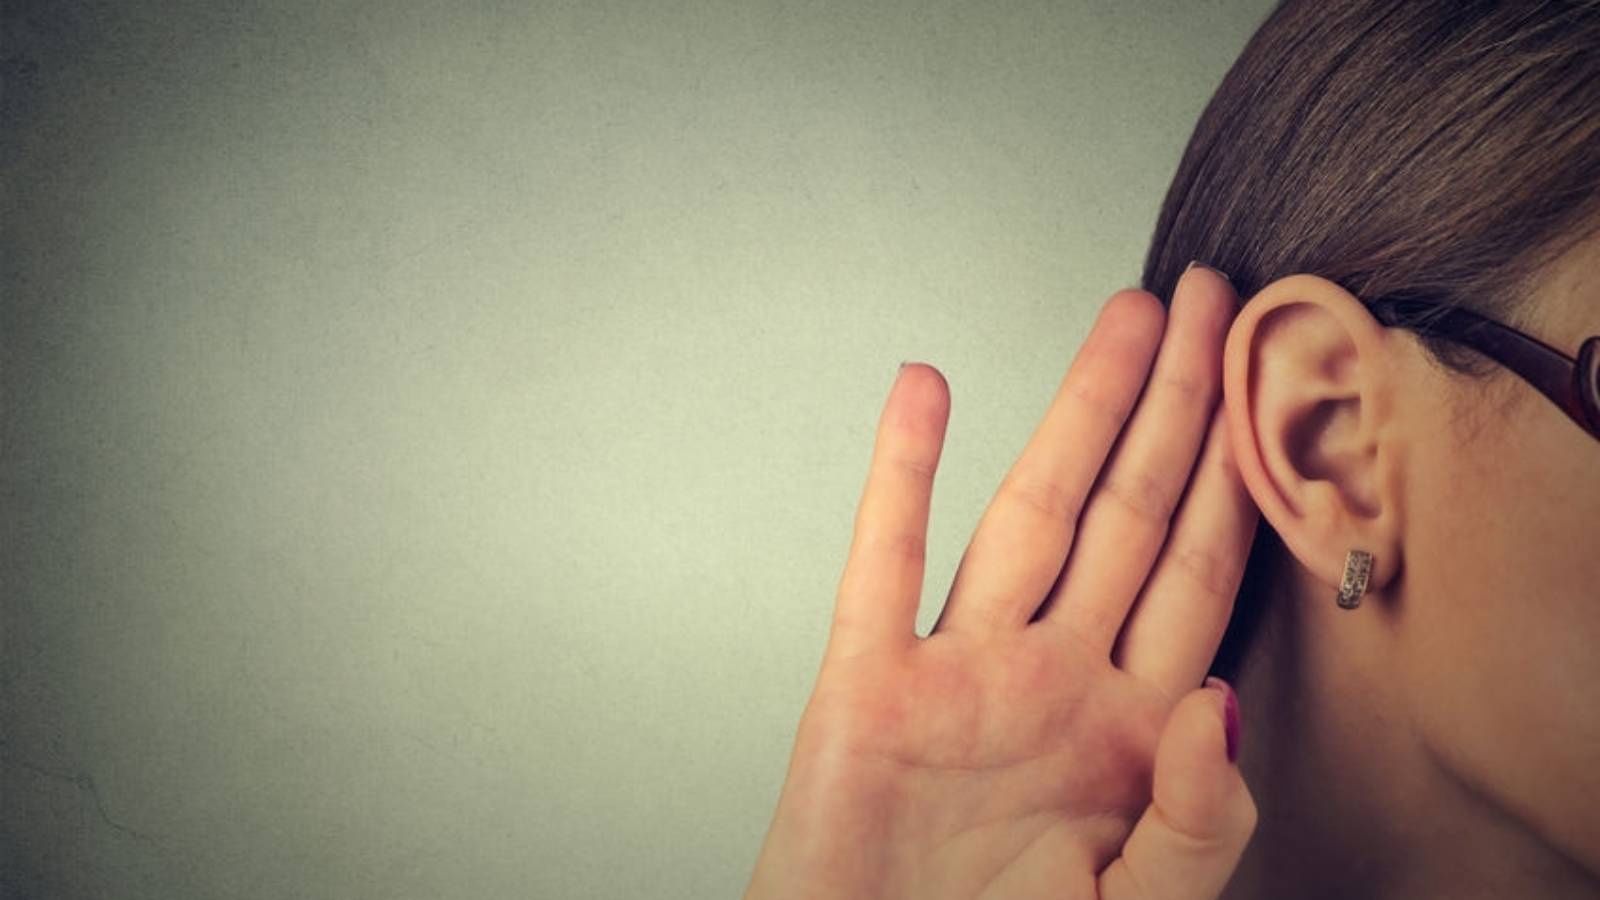 Do you know how to protect your hearing?